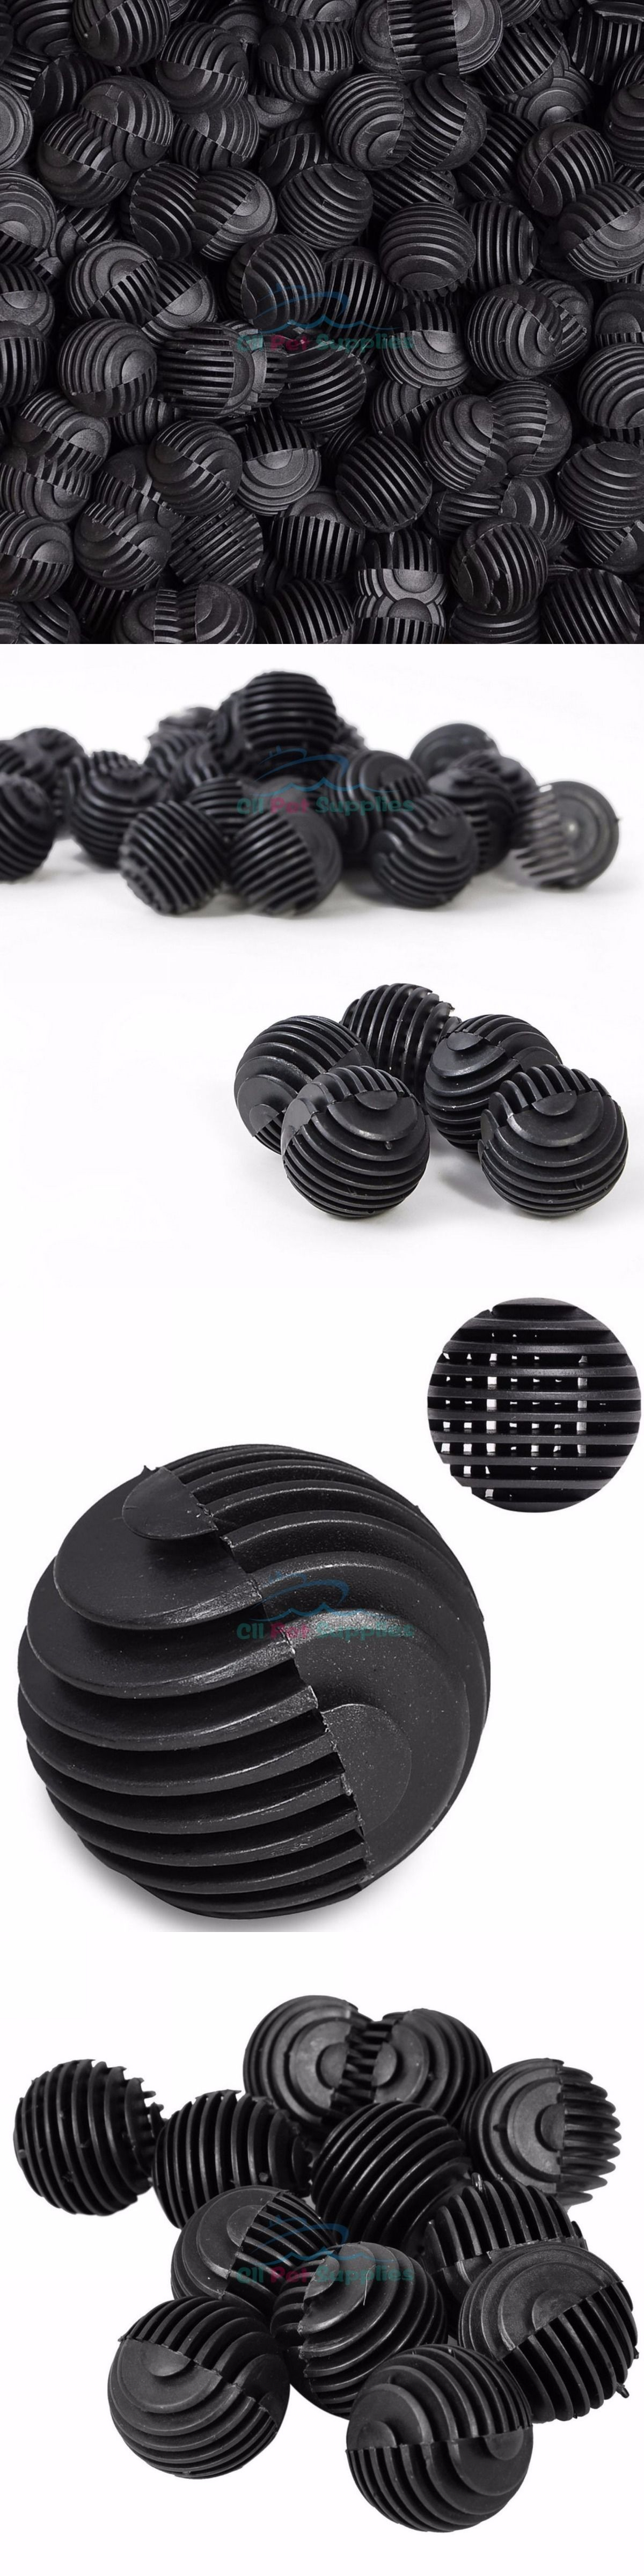 filter media and accessories 800 pcs 1 2 bio balls wet dry